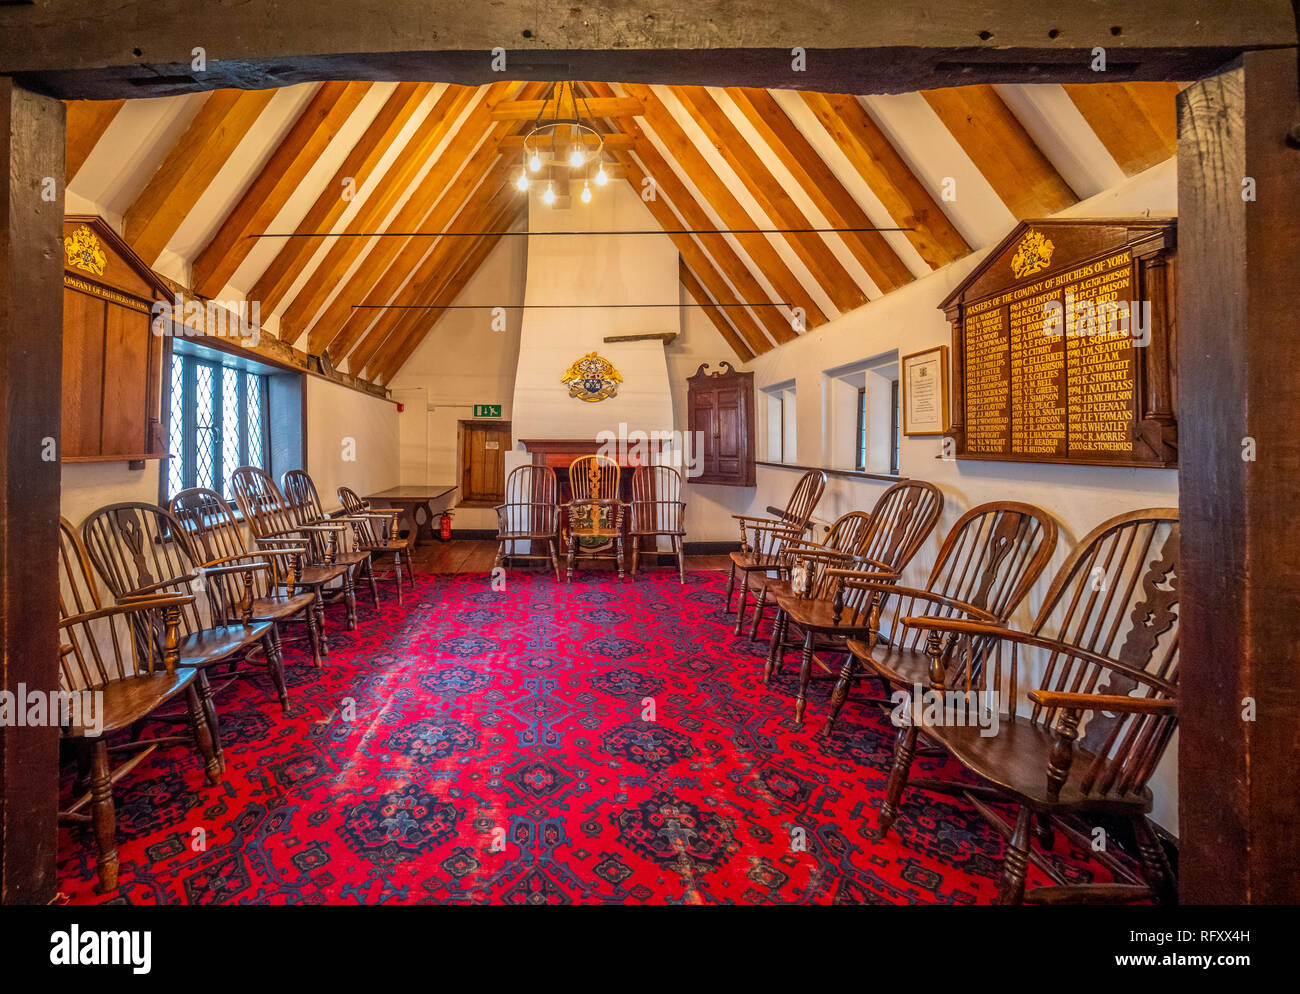 Jacob's Well, Medieval building and the parish room for the Priory Church of the Holy Trinity, Micklegate, York, UK. - Stock Image